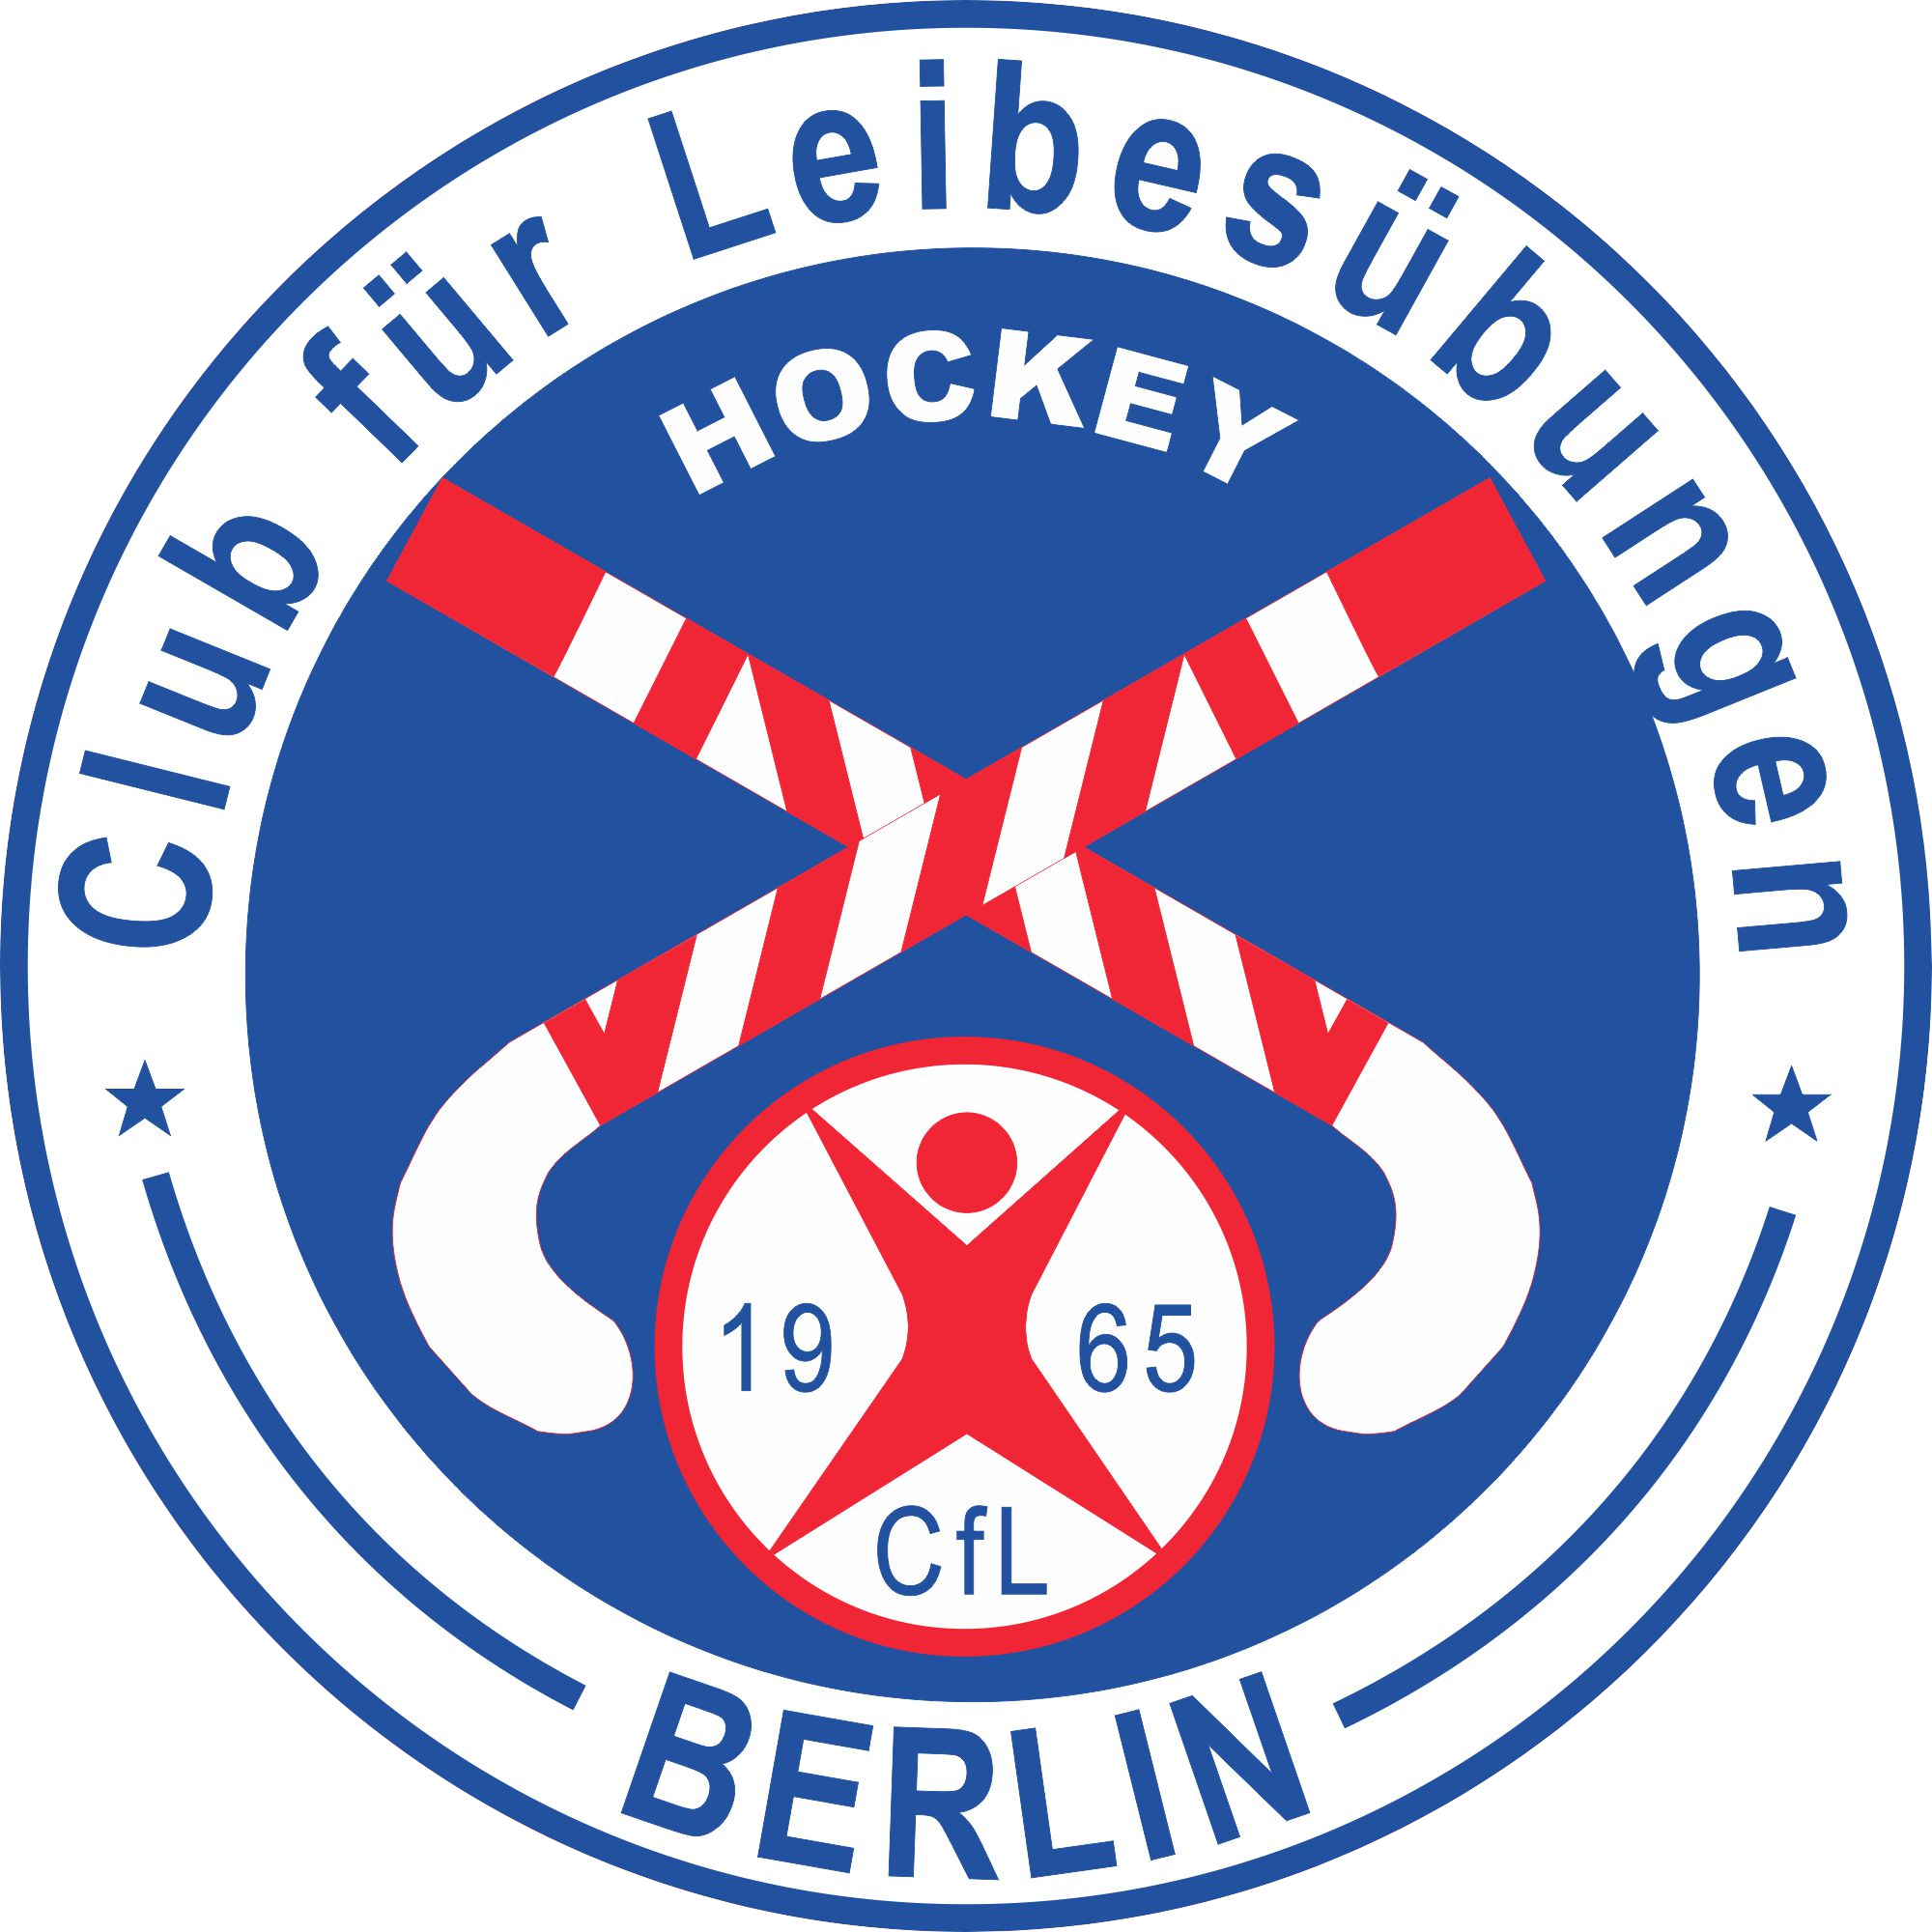 CfL Berlin Hockey